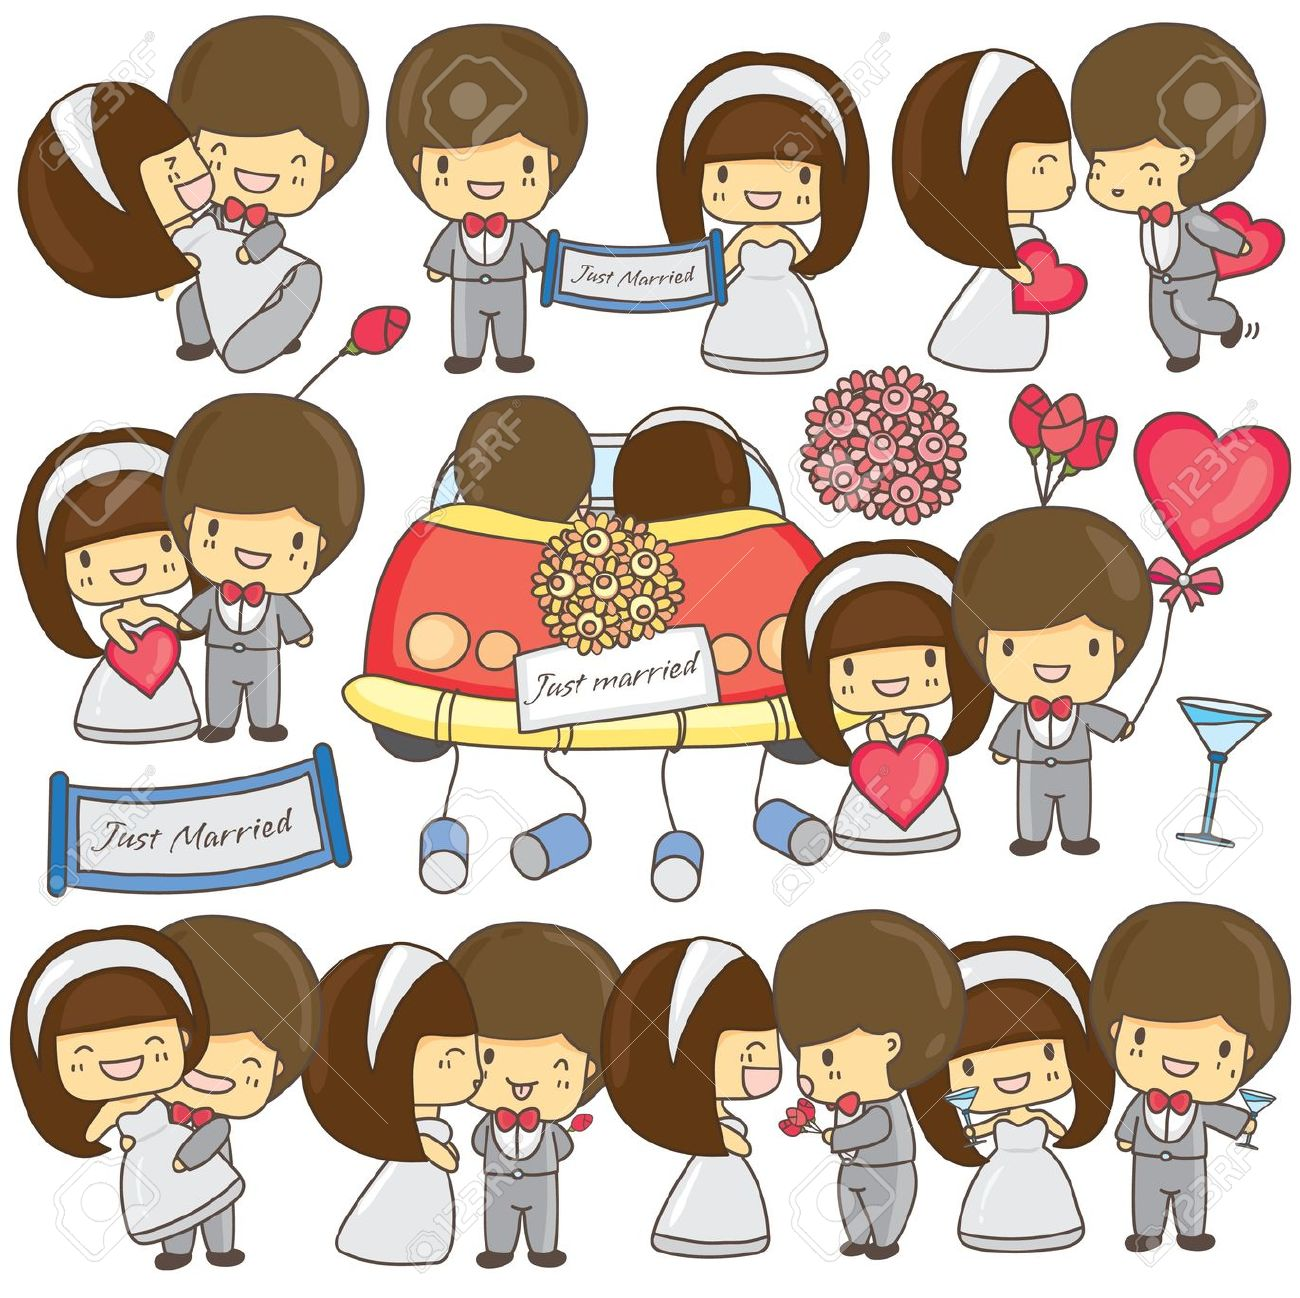 Cartoon Wedding Couple Clipart.